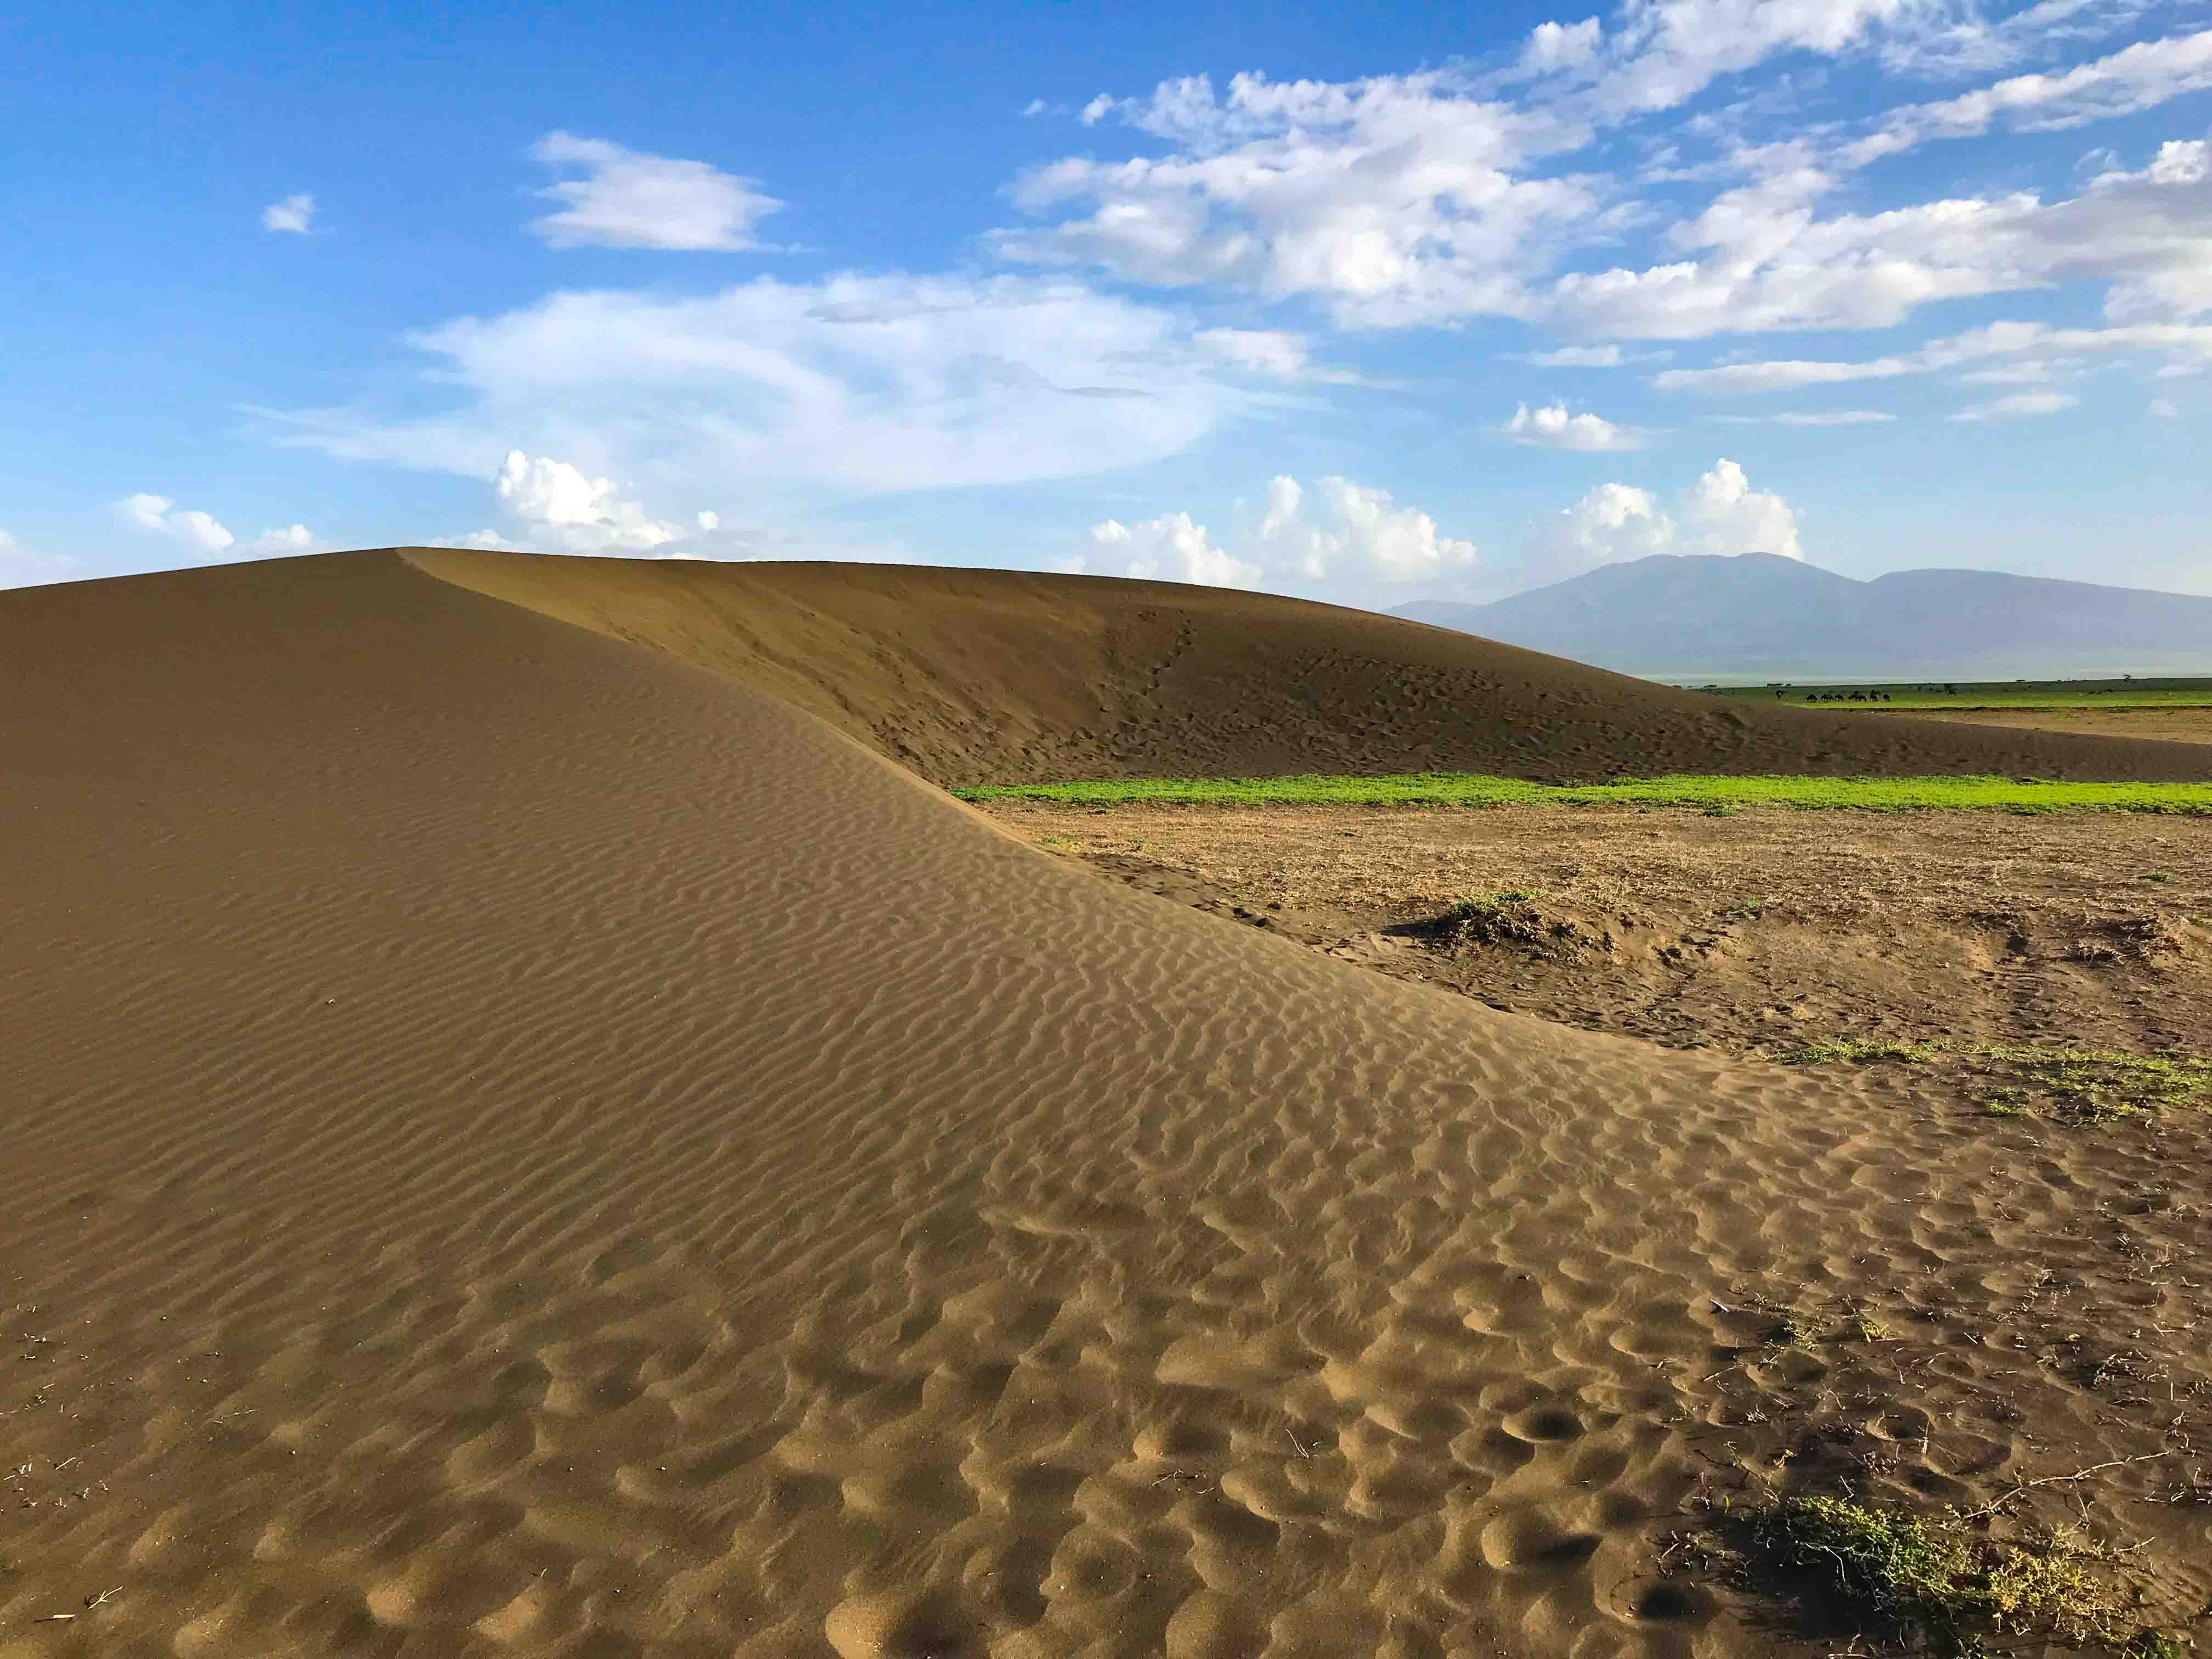 'Shifting Sands' Dune - Ngorongoro Conservation Area Authority